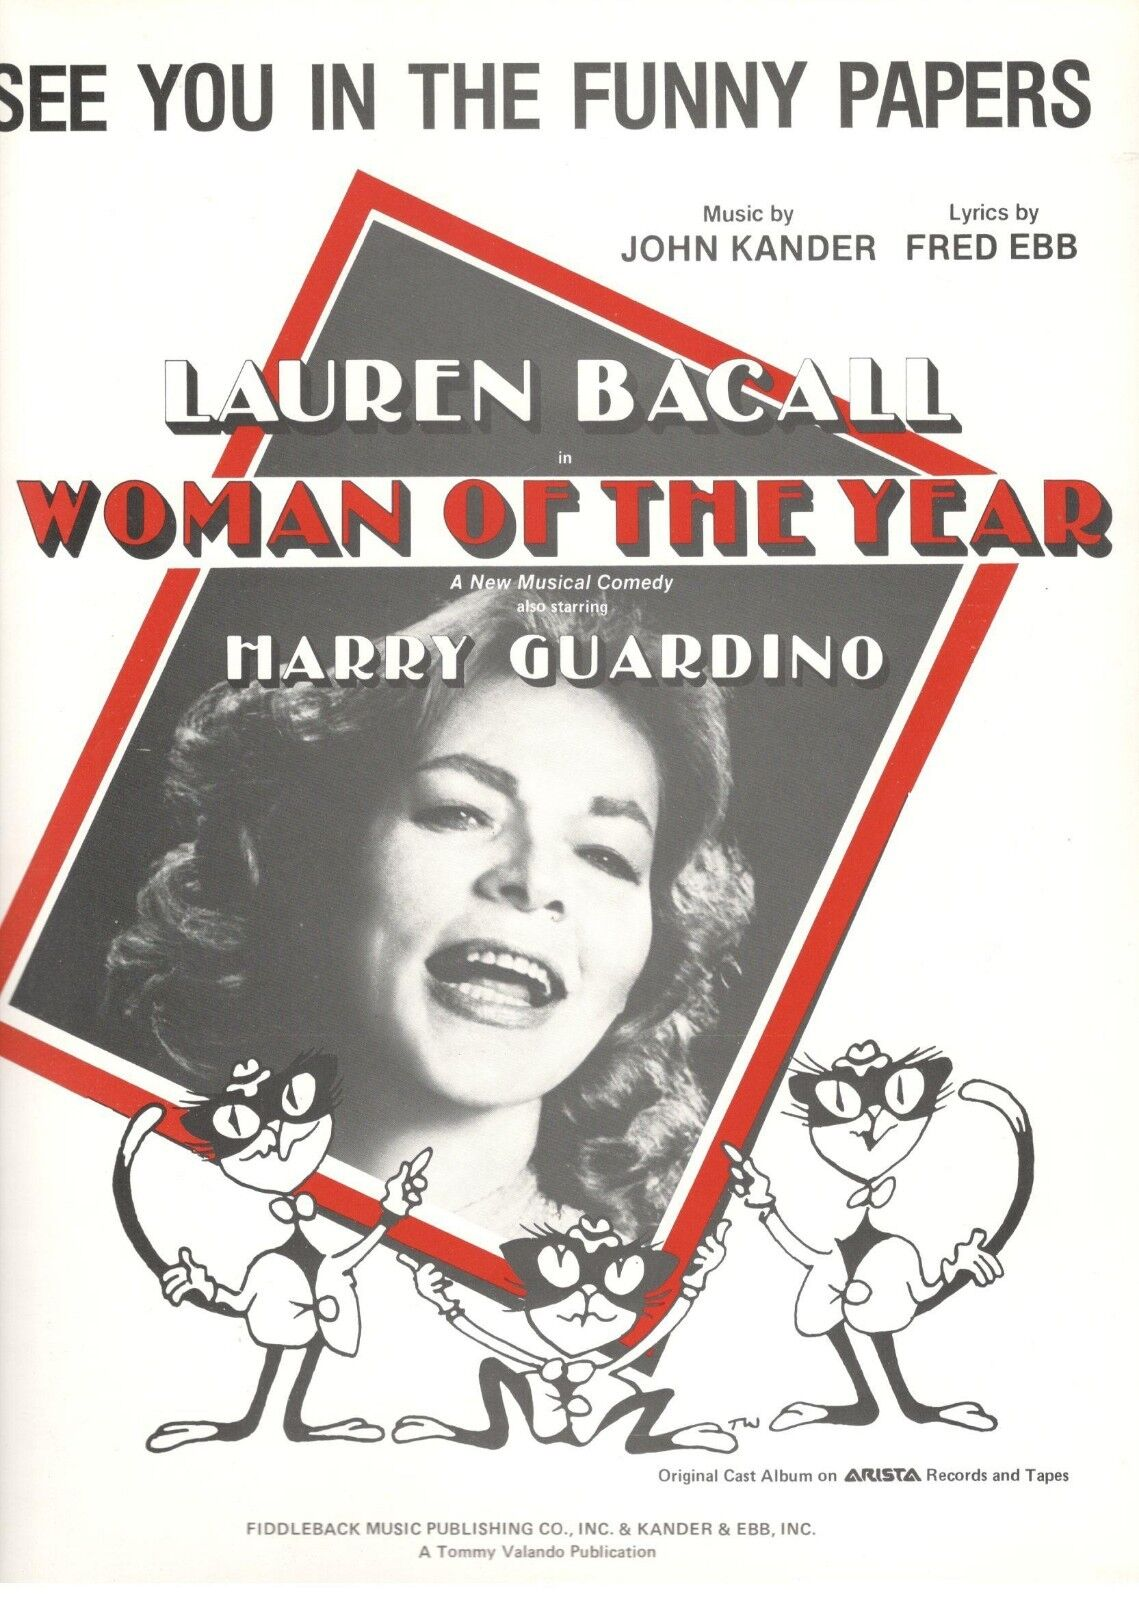 SEE YOU IN THE FUNNY PAPERS  SHEET MUSIC-WOMAN OF THE YEAR-LAUREN BACALL-NEW